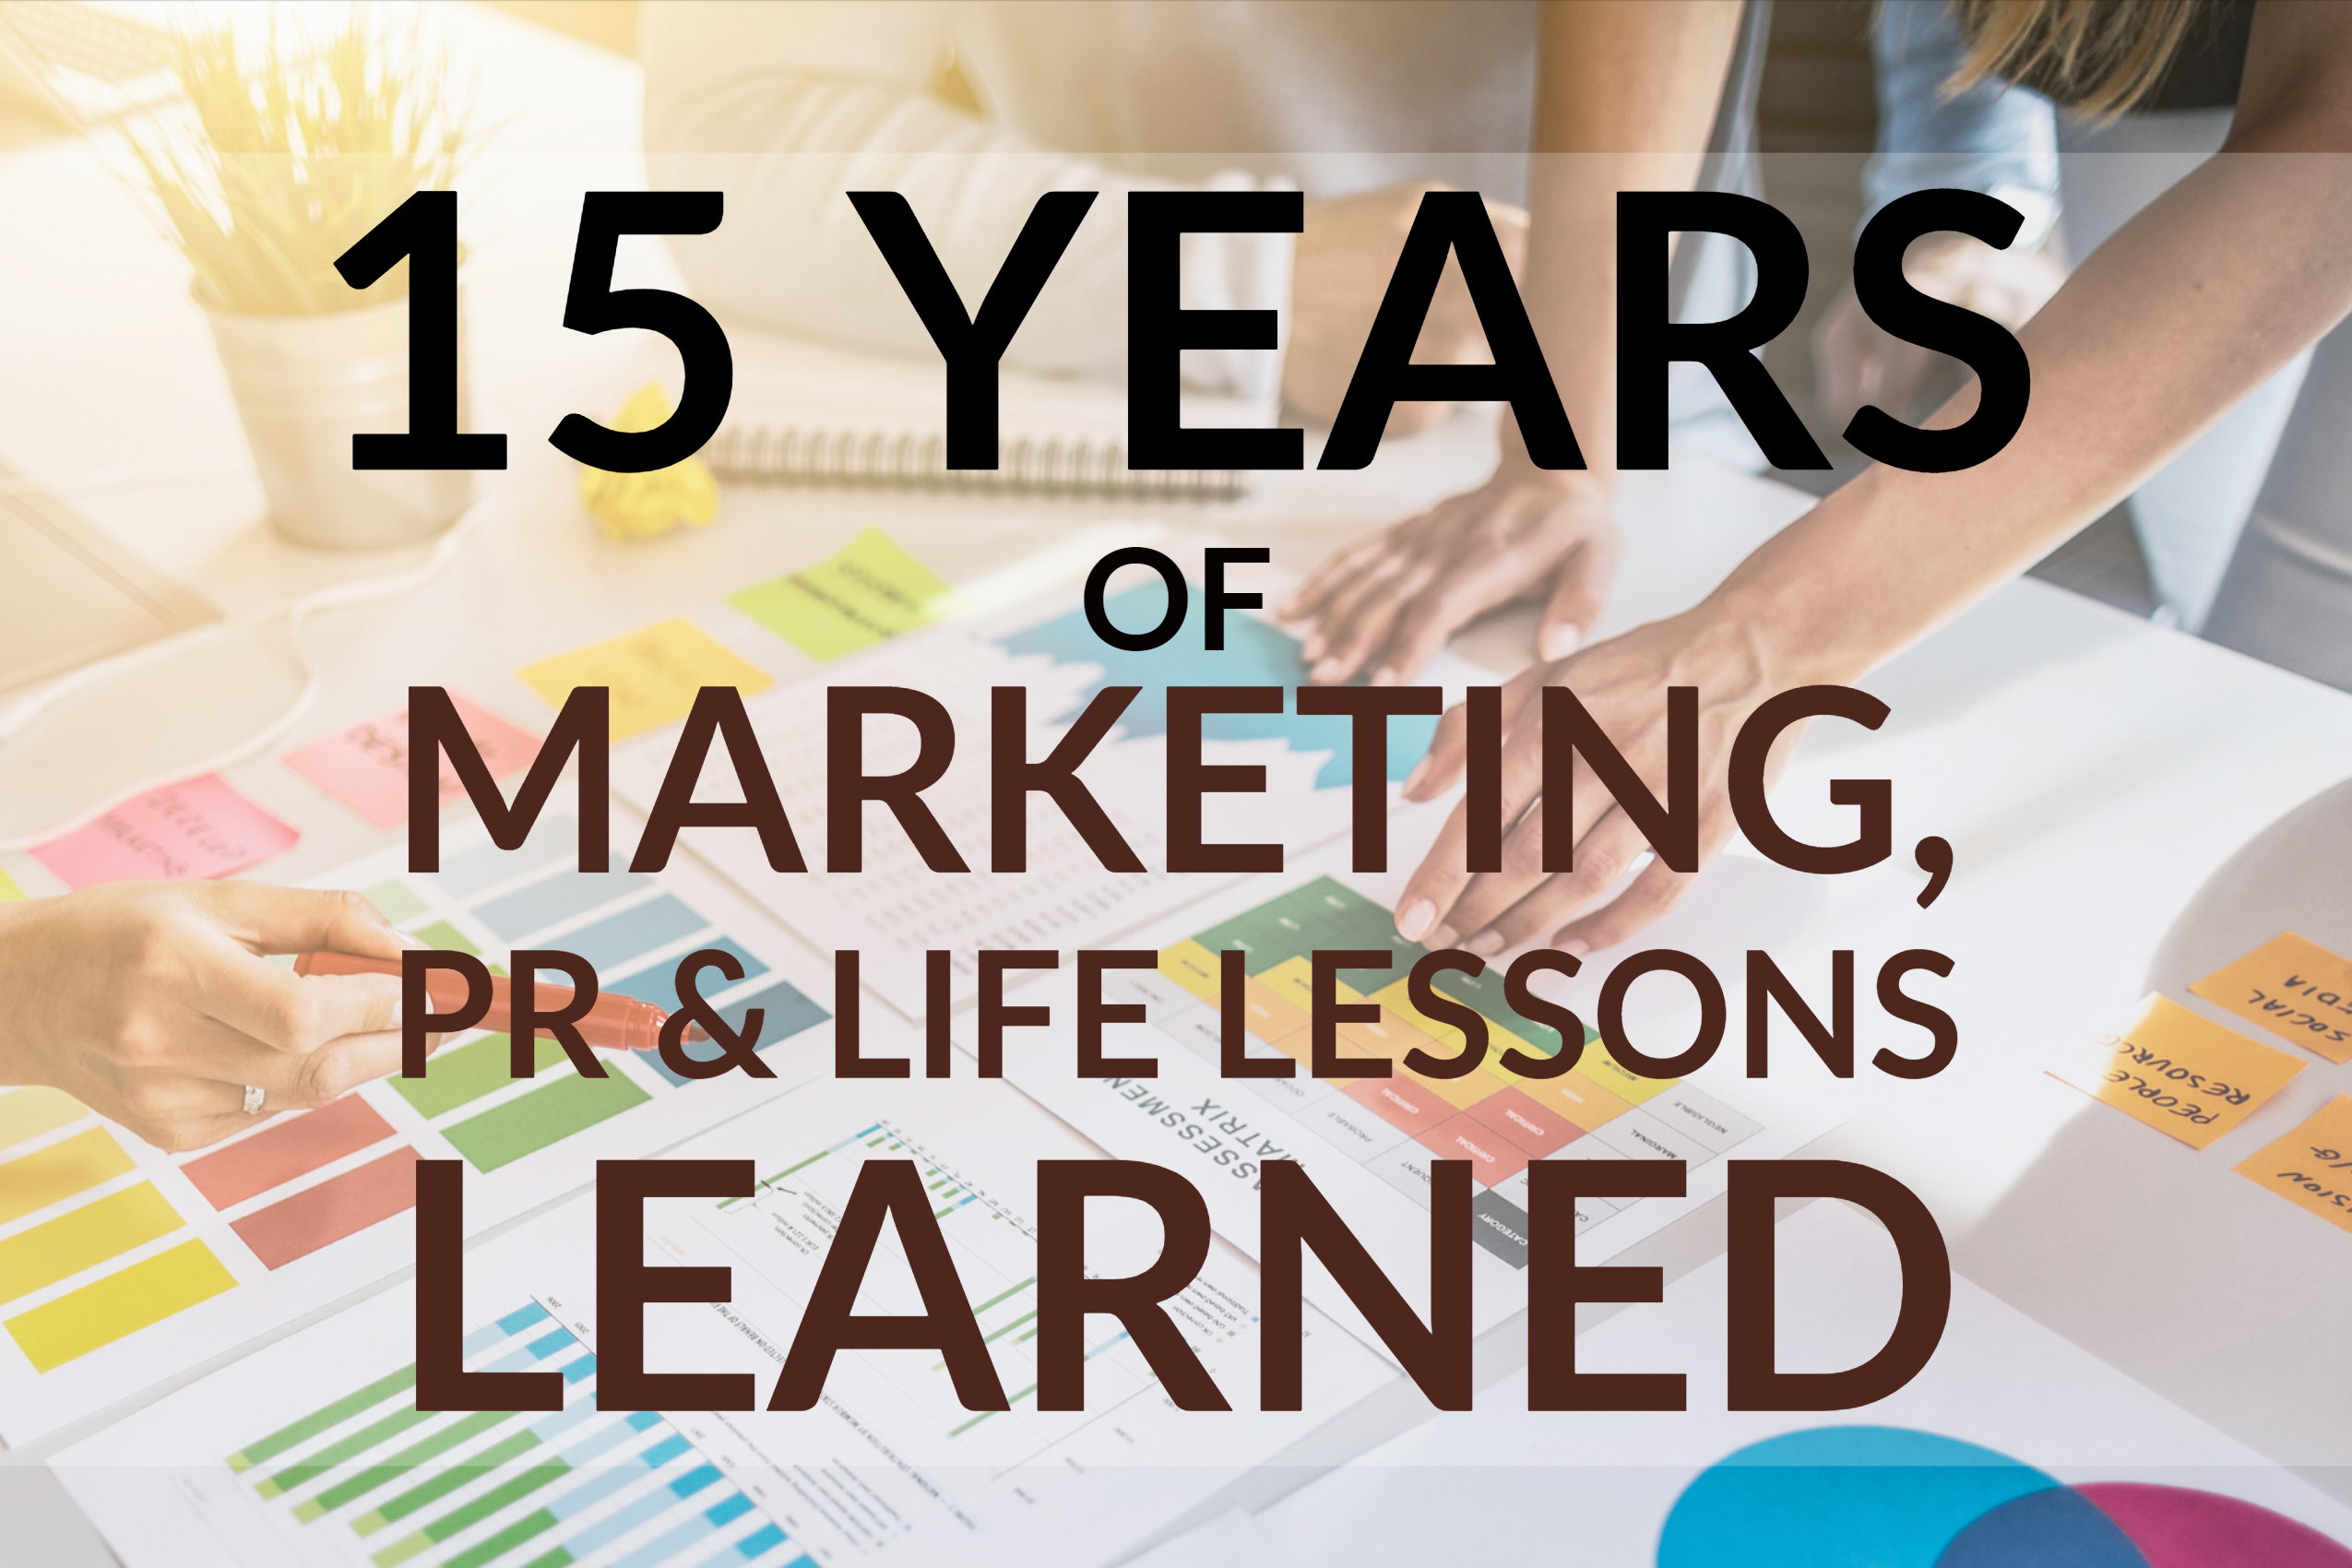 15 Years Of Marketing, PR & Life Lessons Learned